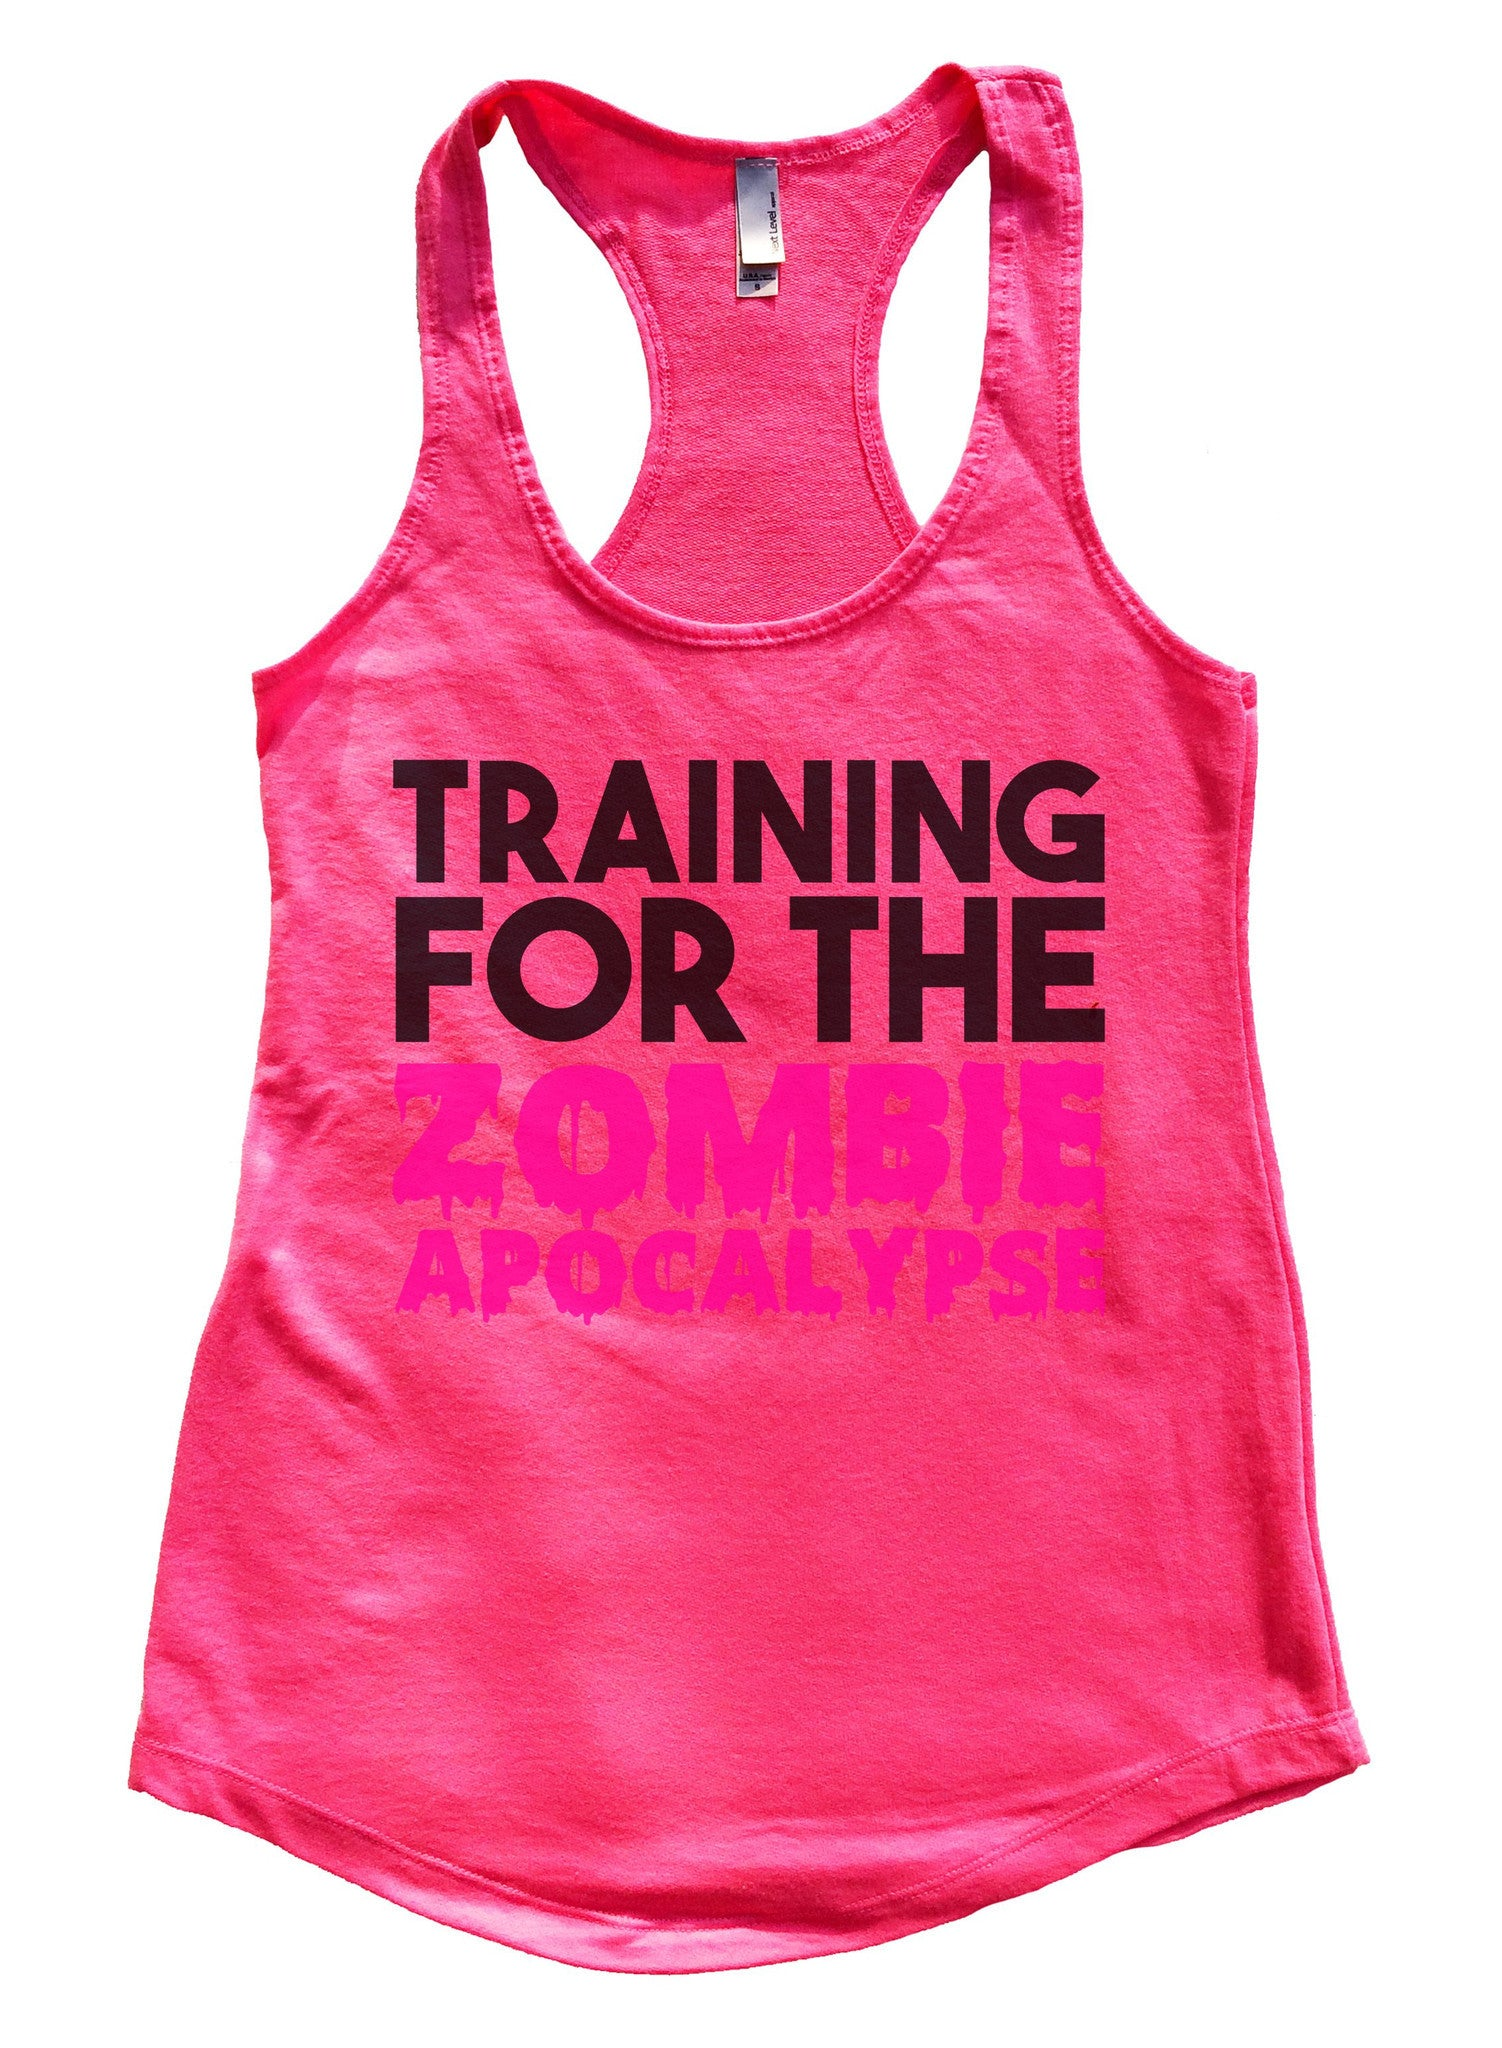 Training For The Zombie Apocalypse Womens Workout Tank Top F873 - Funny Shirts Tank Tops Burnouts and Triblends  - 5